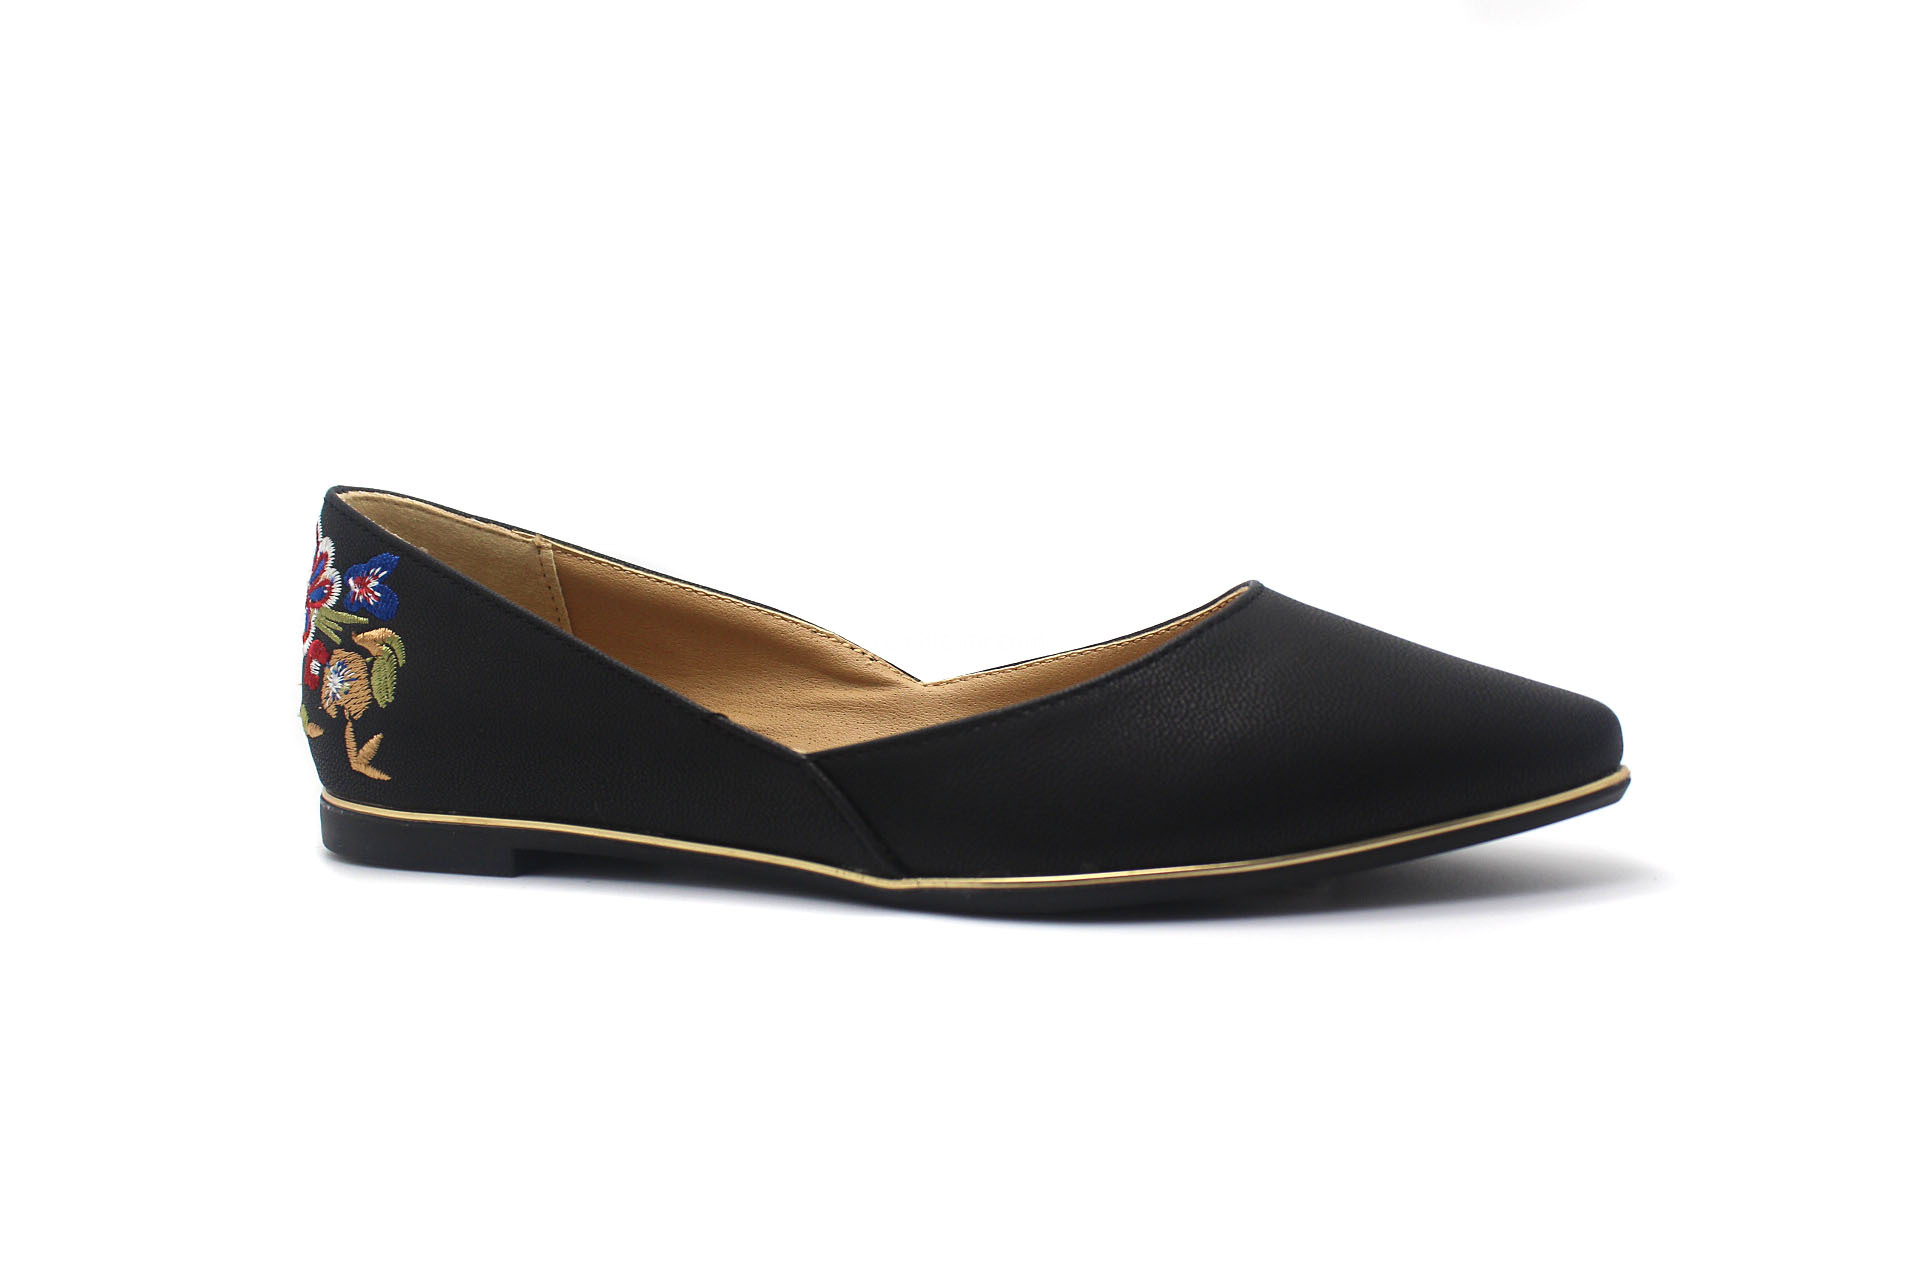 Poity toe flat shoes with embroidery elements